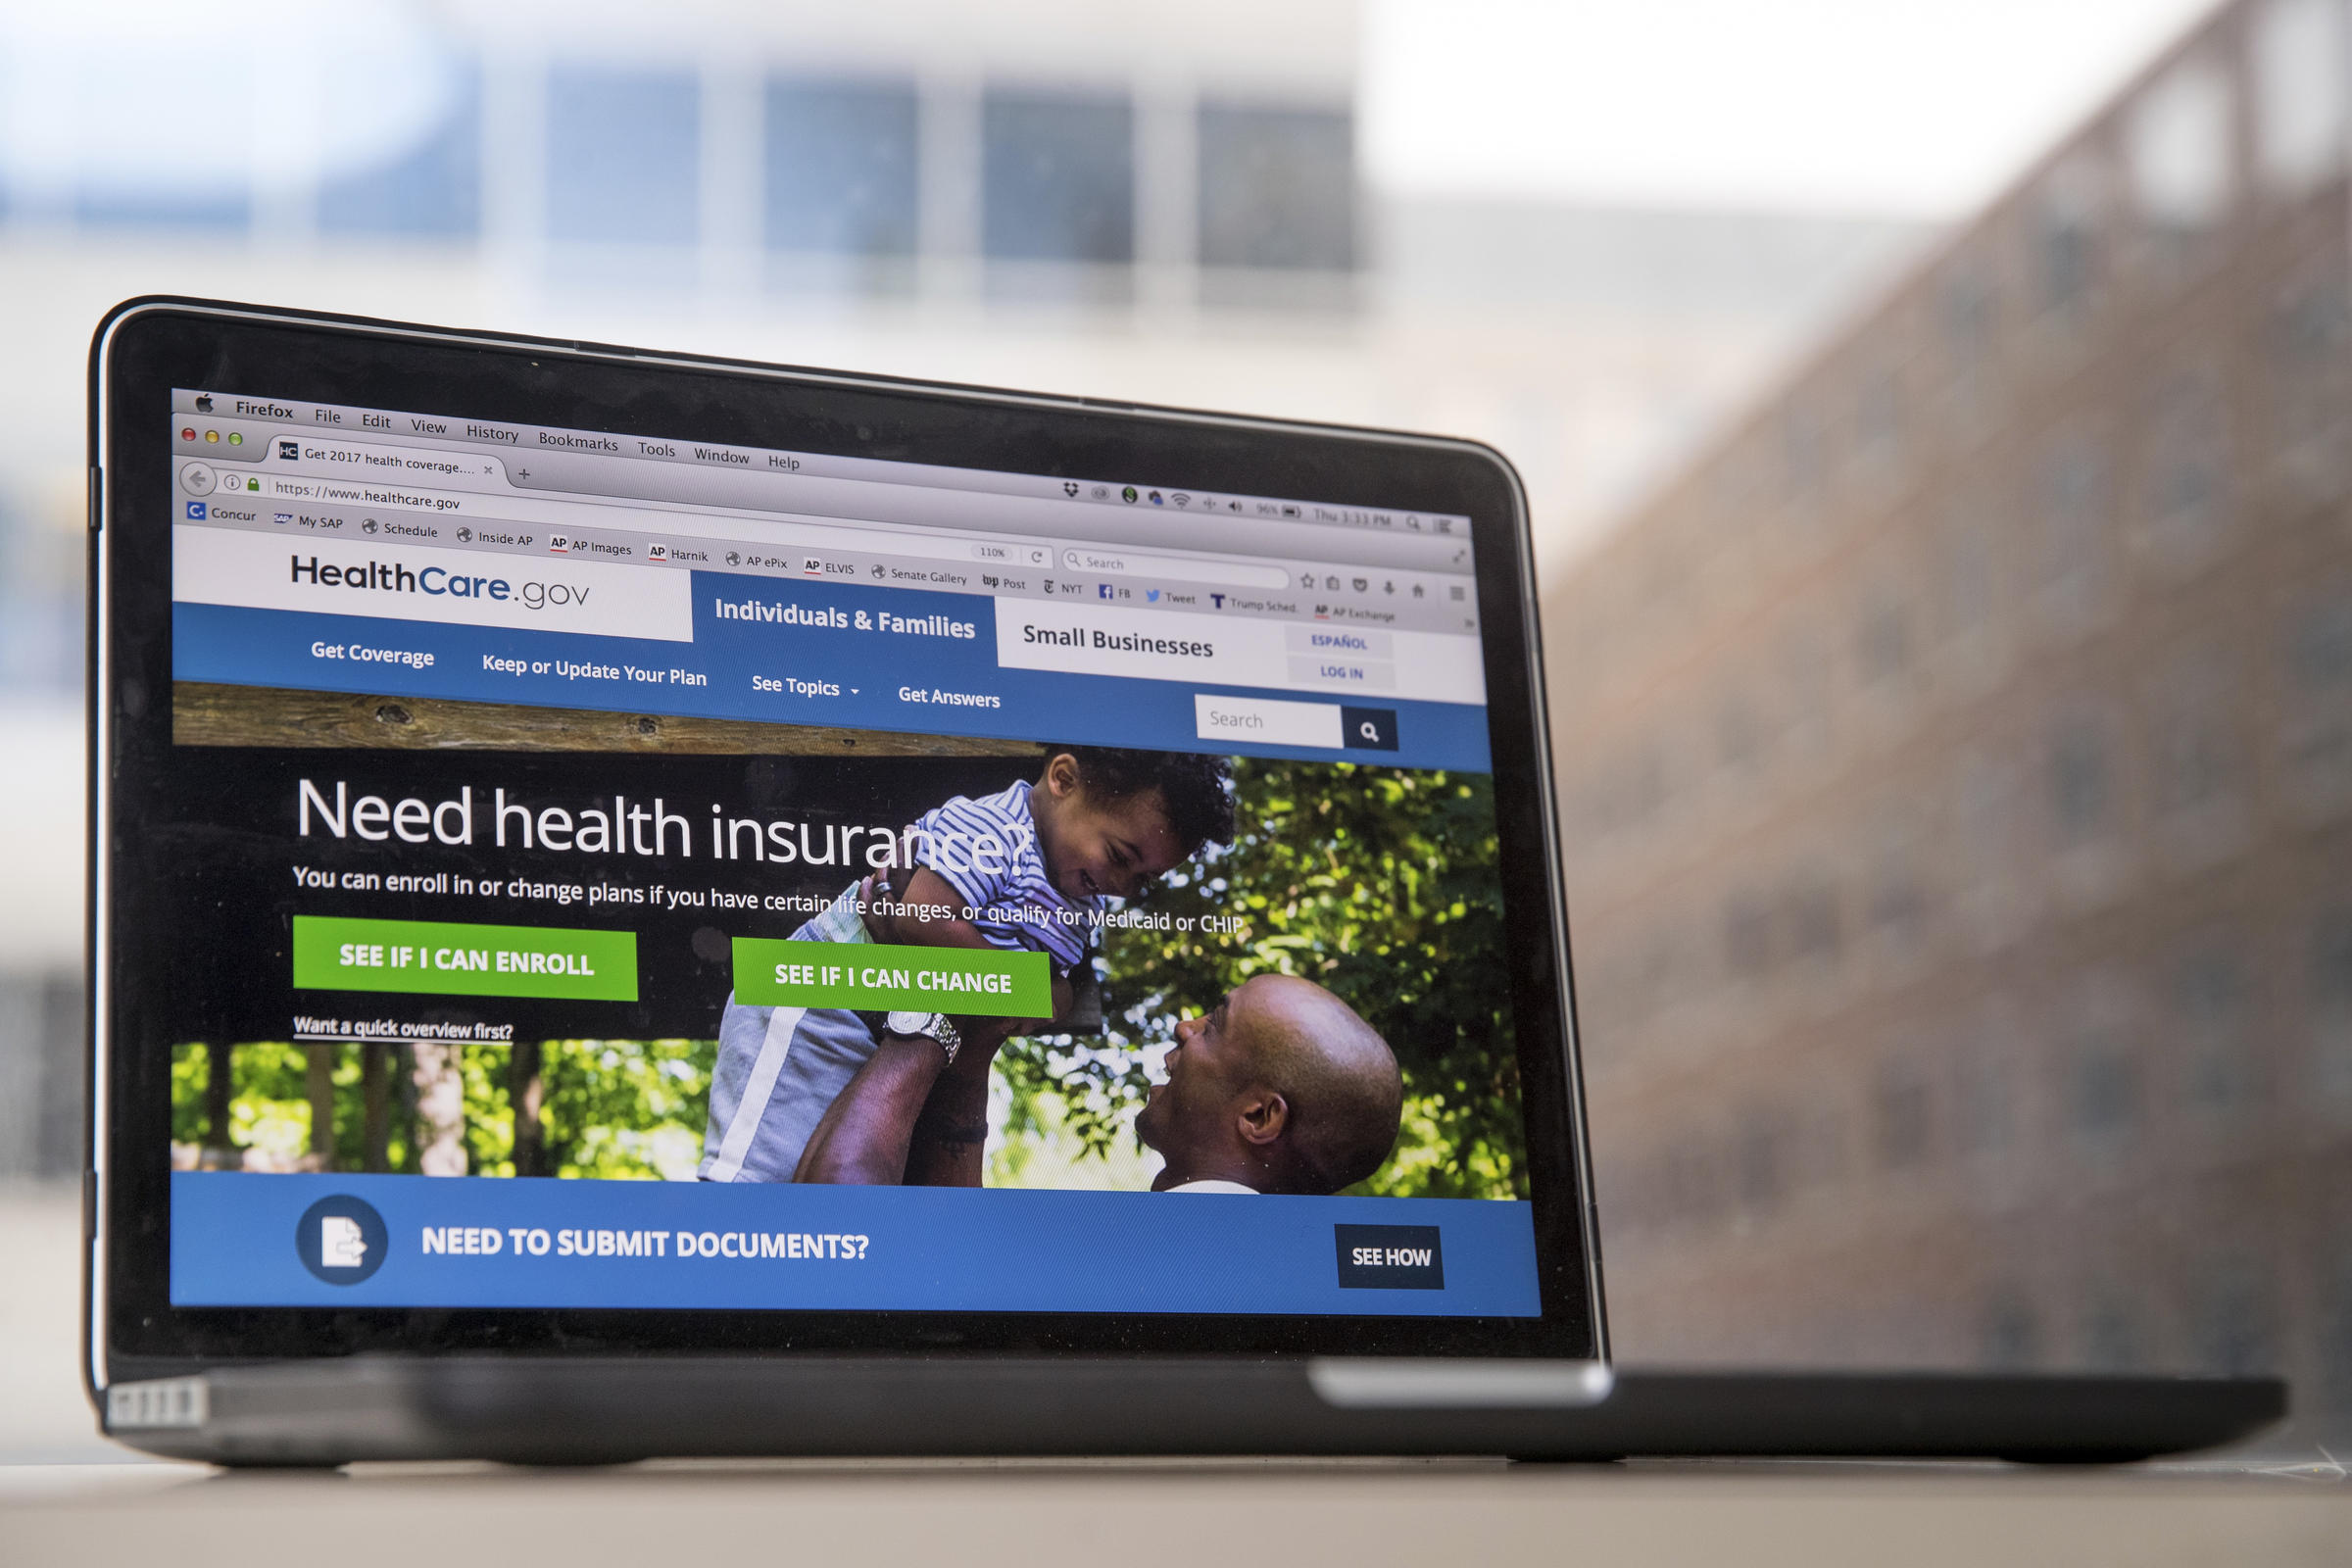 Obamacare Trump seeks to dismantle sets record in enrollment